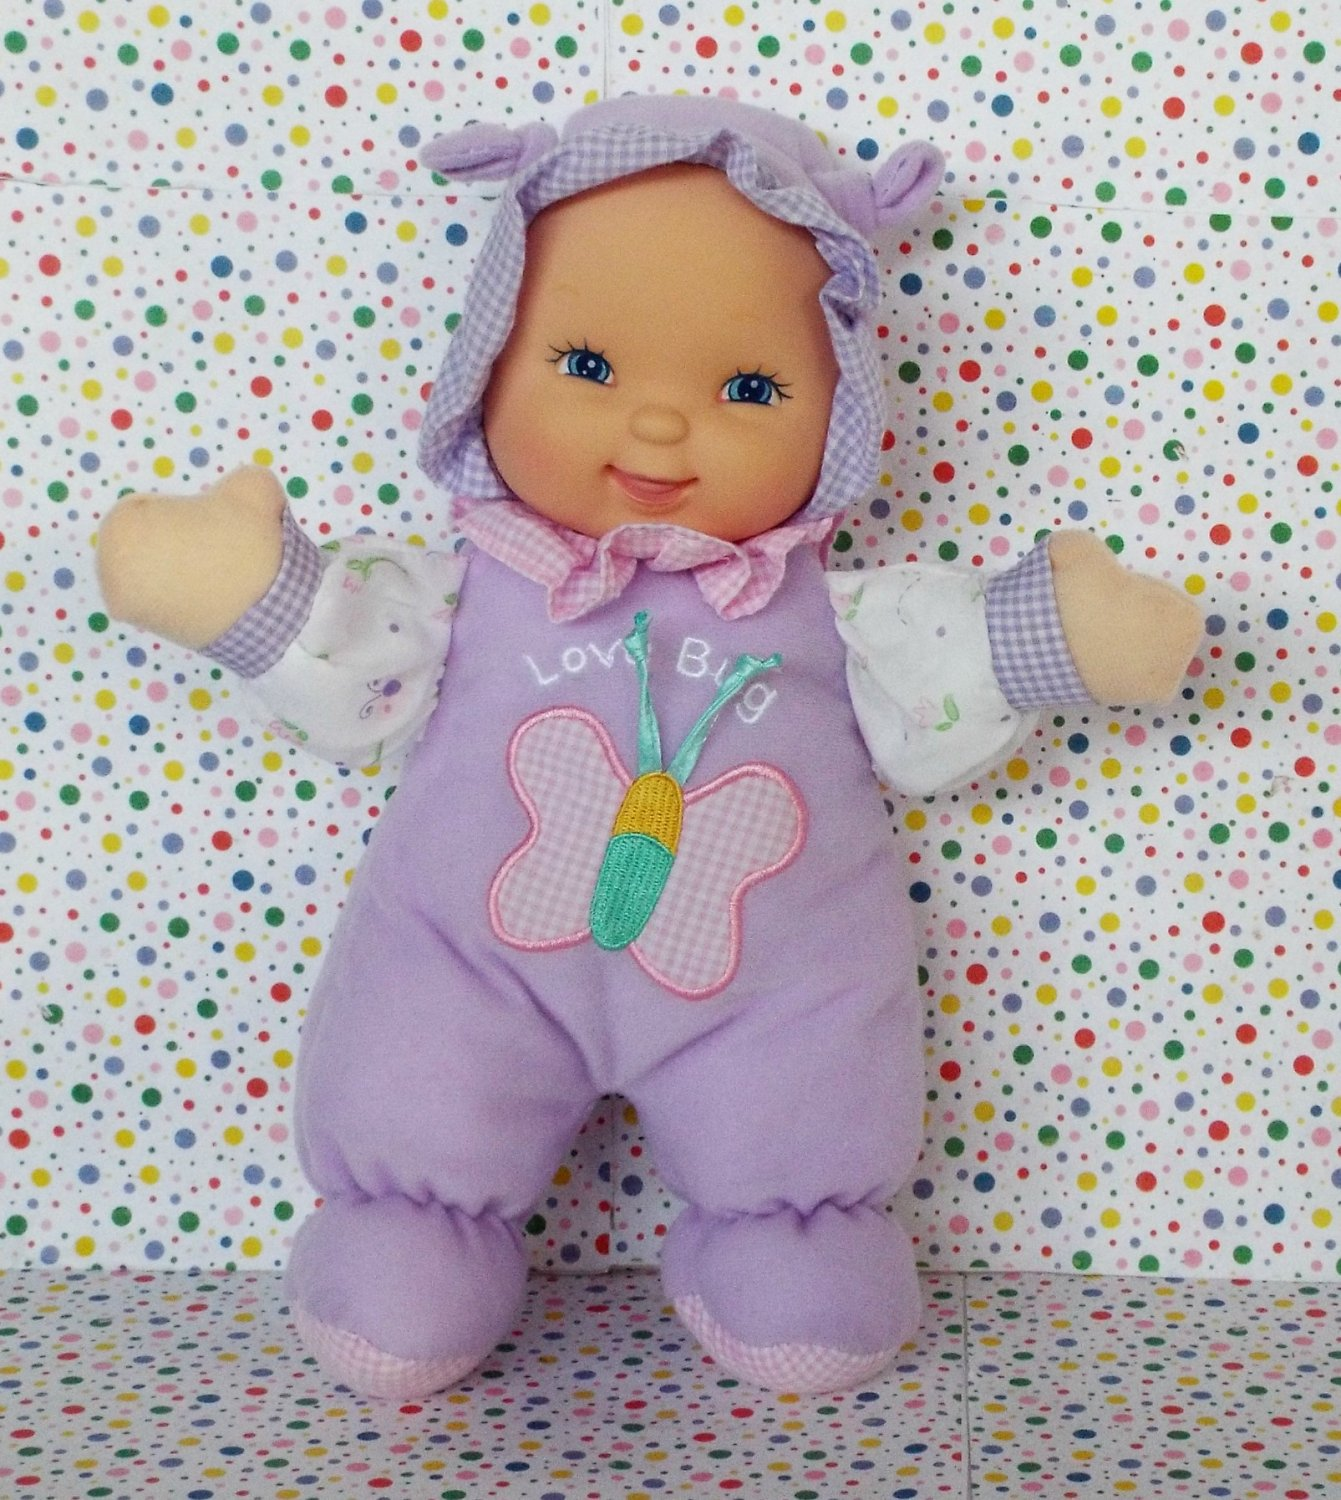 716soldgoldberger my first baby doll quotlove bugquot purple